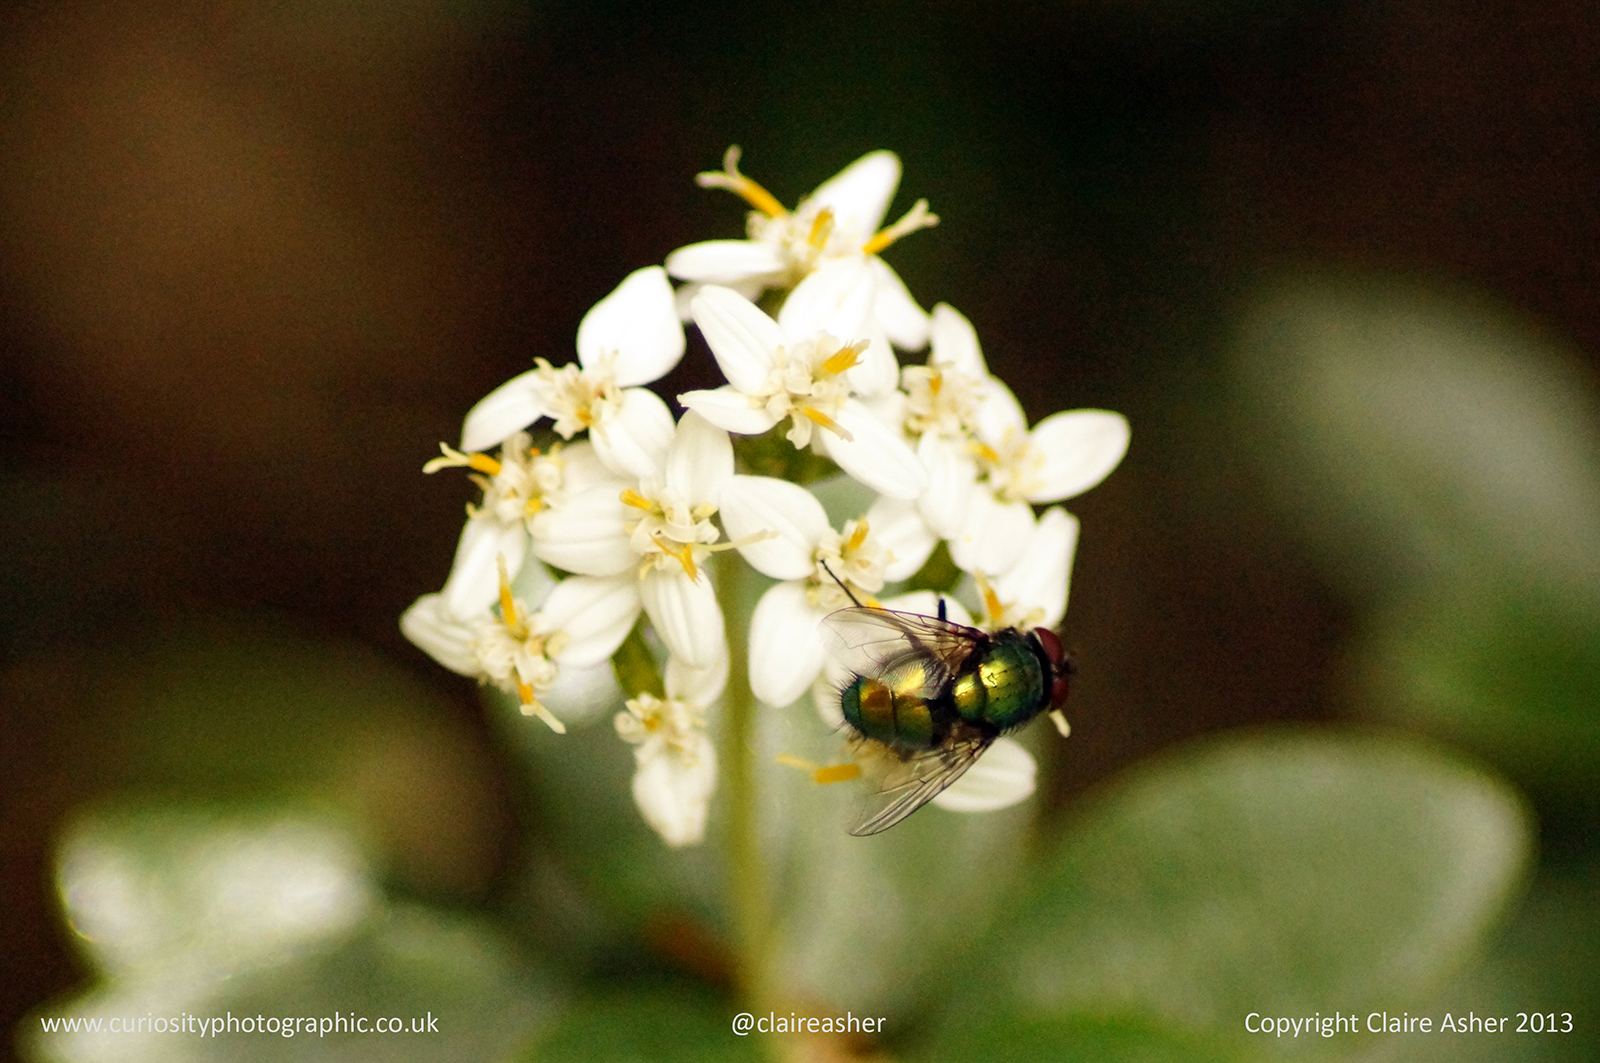 A fly (Lucilia sericata) on a white flower, photographed in England in 2013